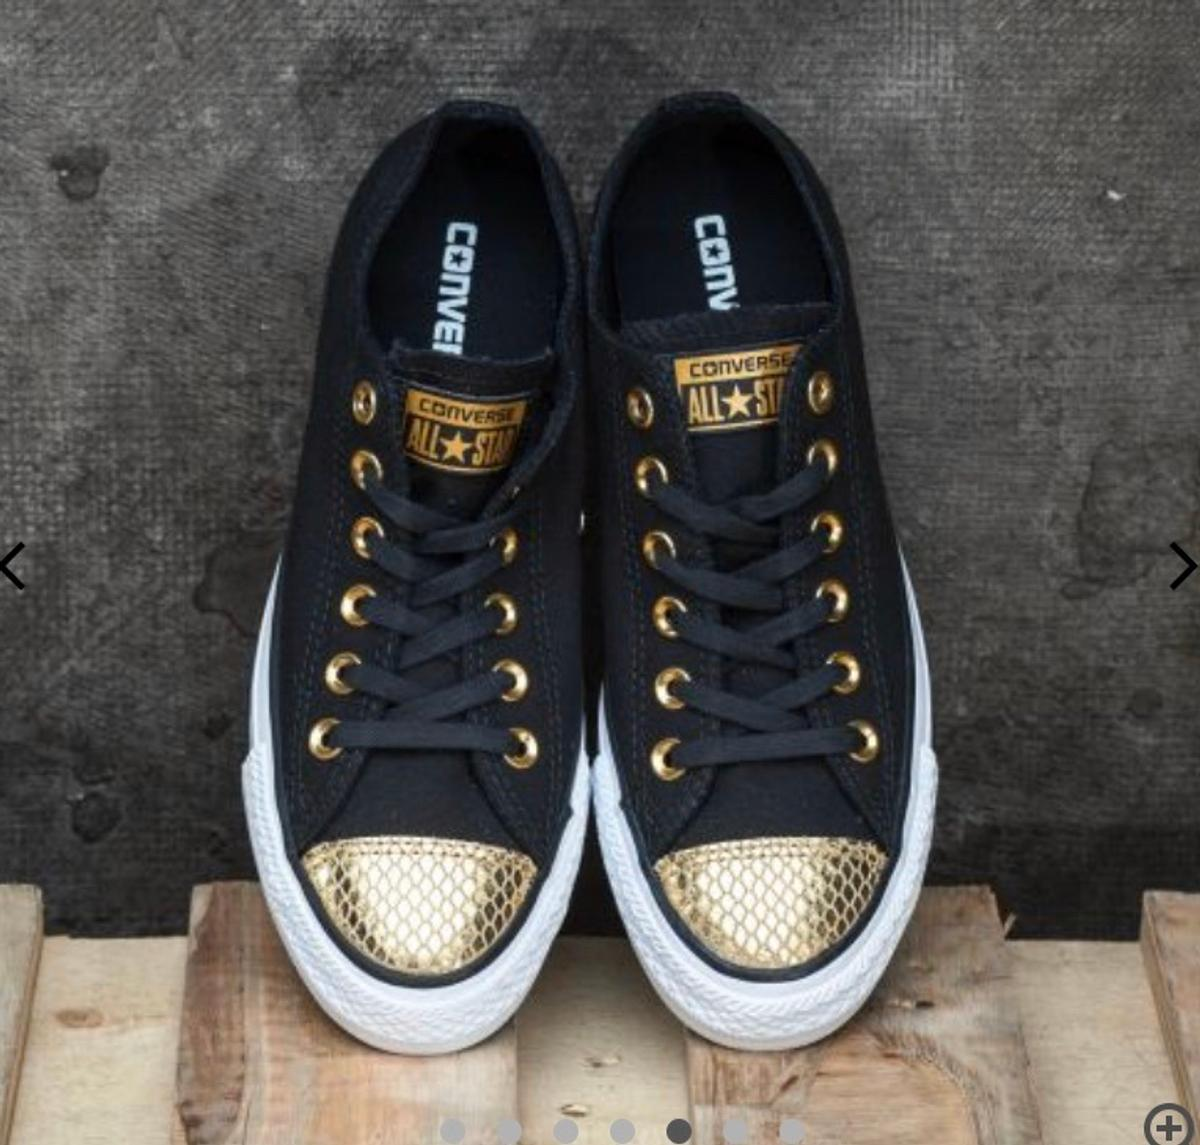 NEW CONDITION SIZE 3 BLACK AND GOLD CONVERSE